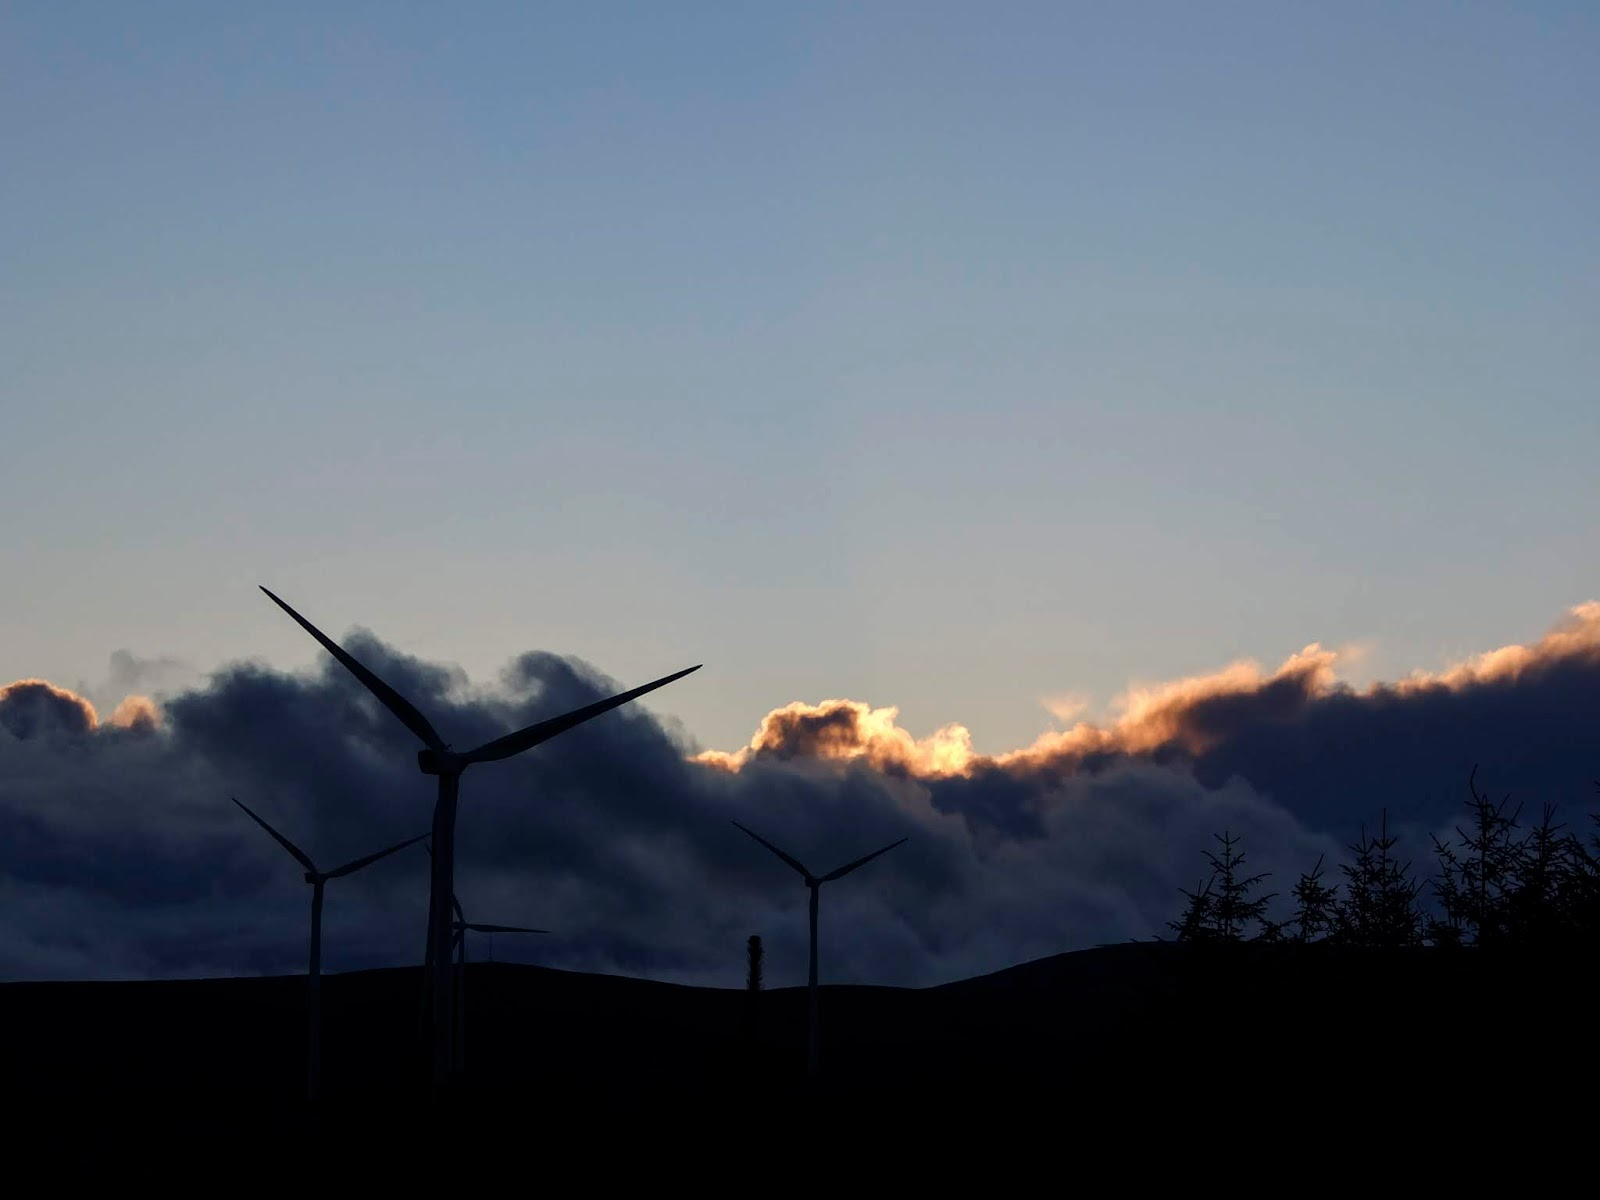 The last of sunset clouds behind the windmills and mountains in North Cork.